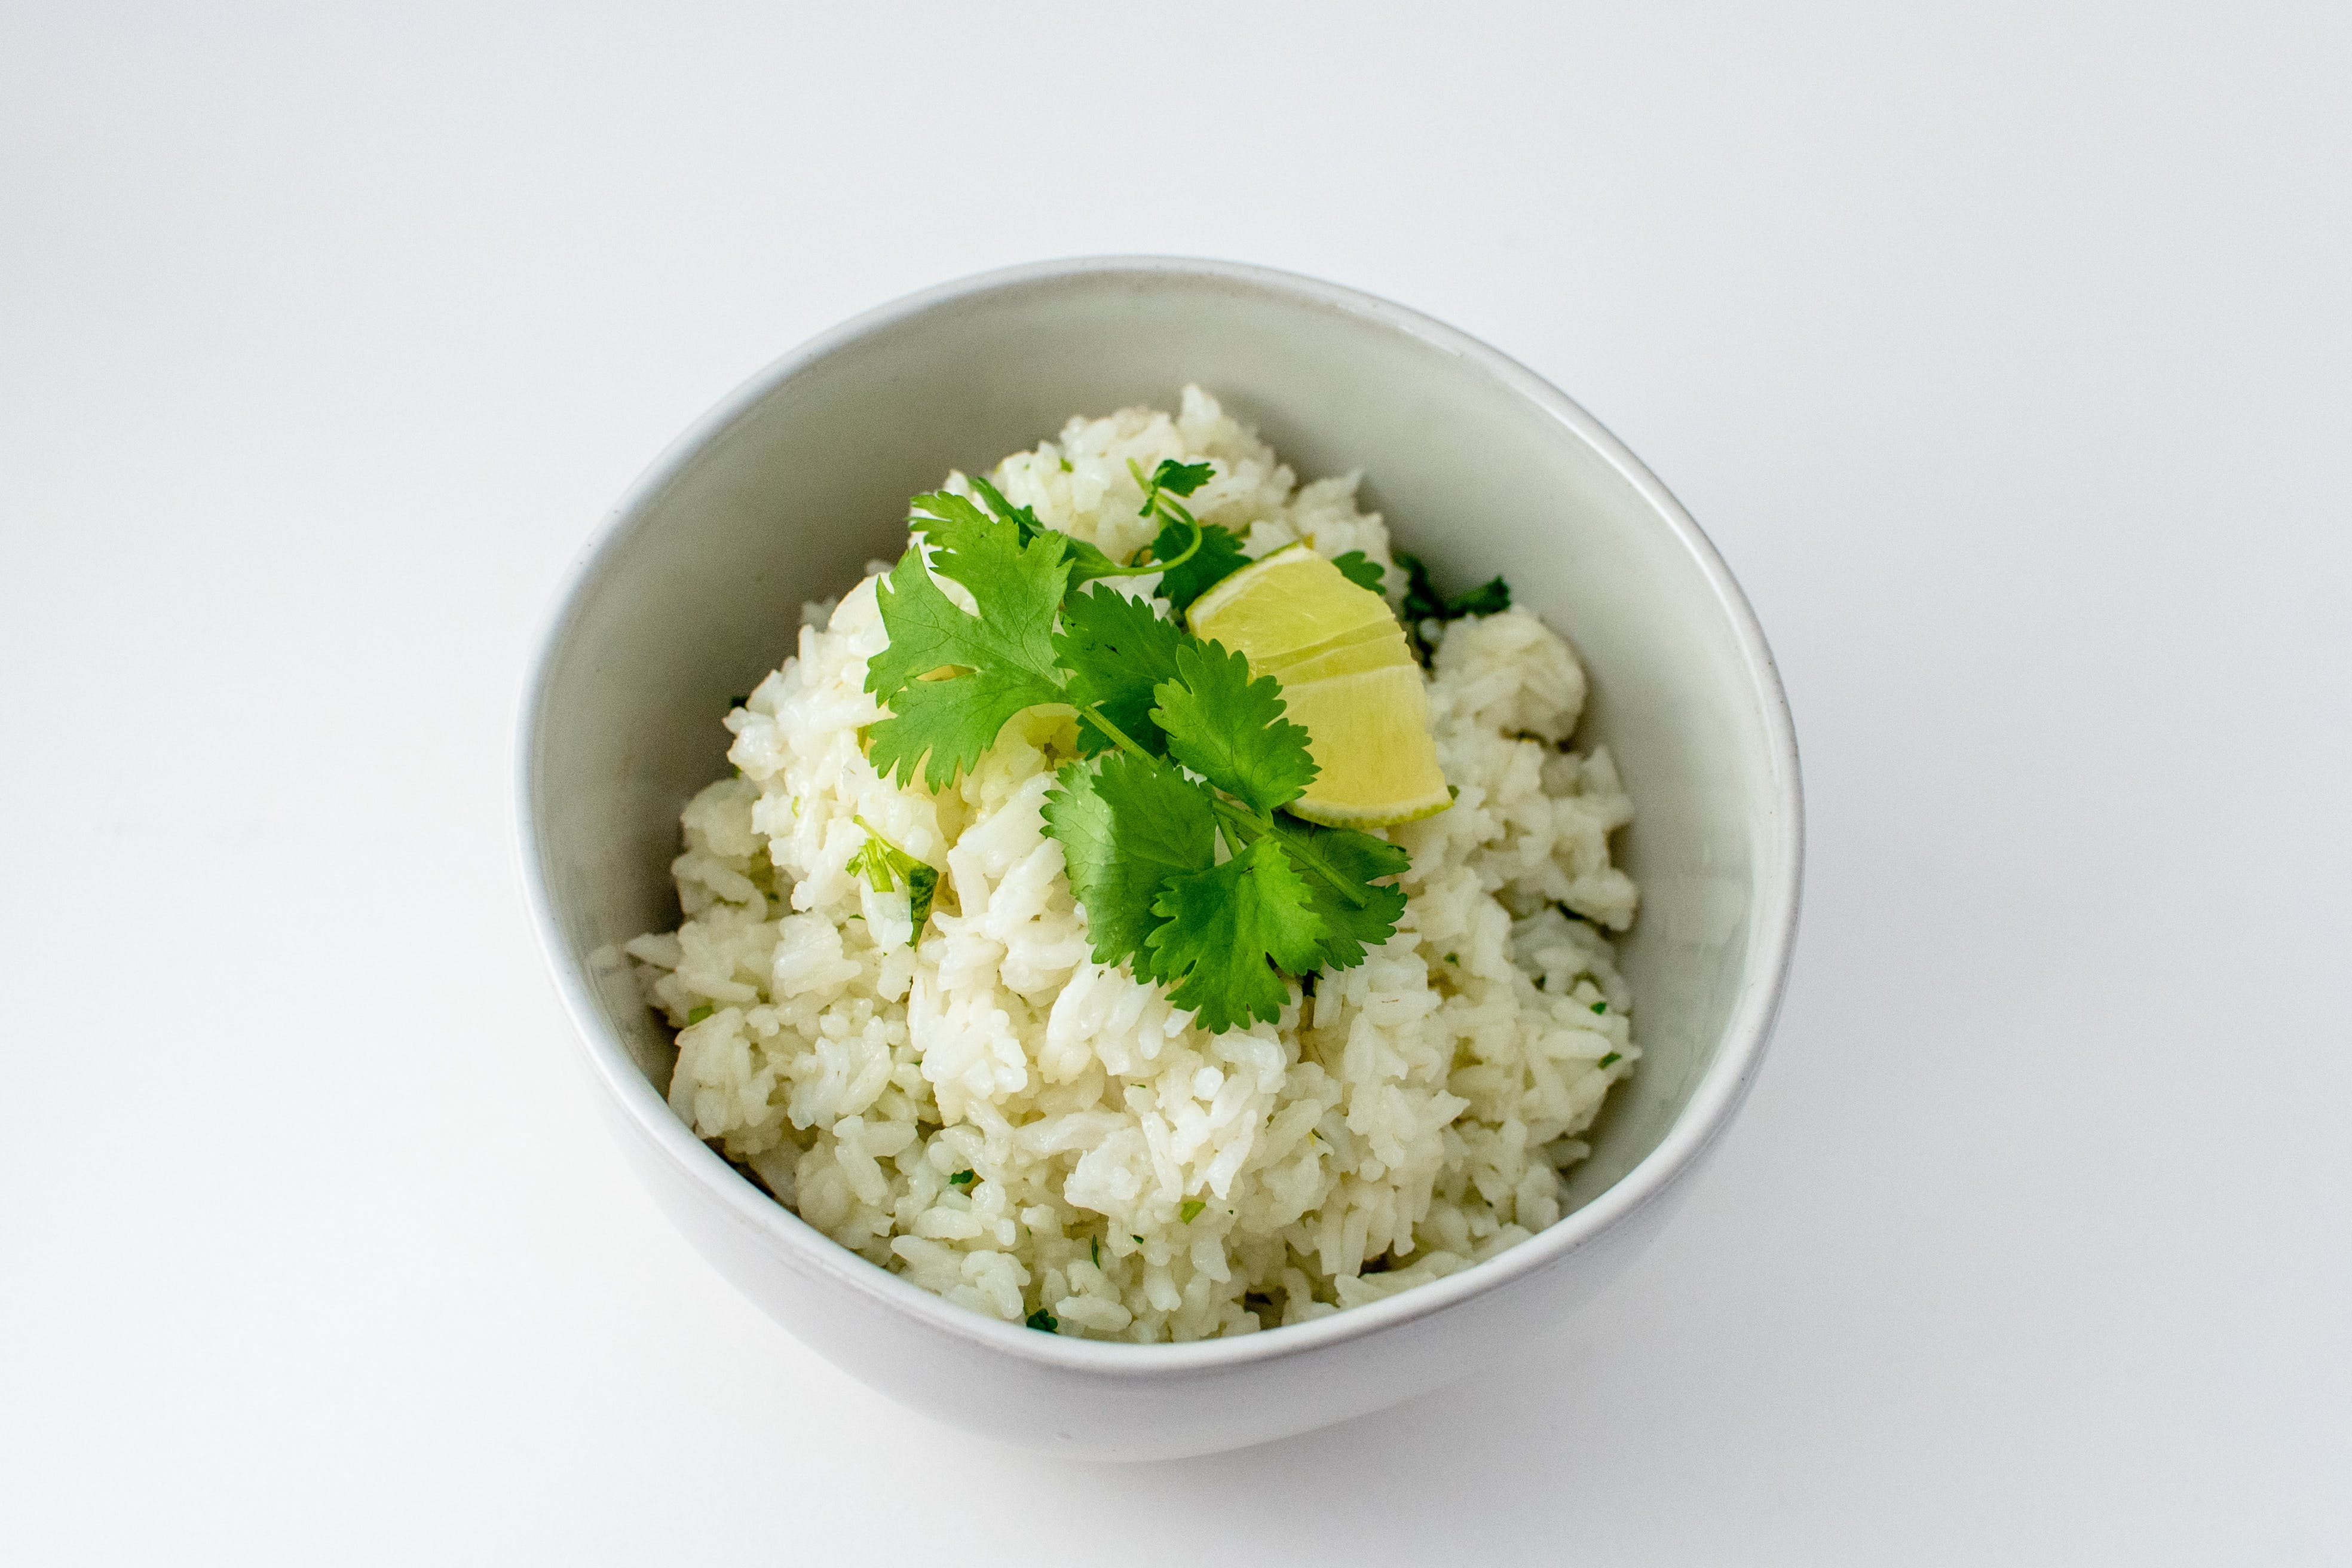 Cilantro Lime Rice from Taco Royale - Center Ave in Janesville, WI